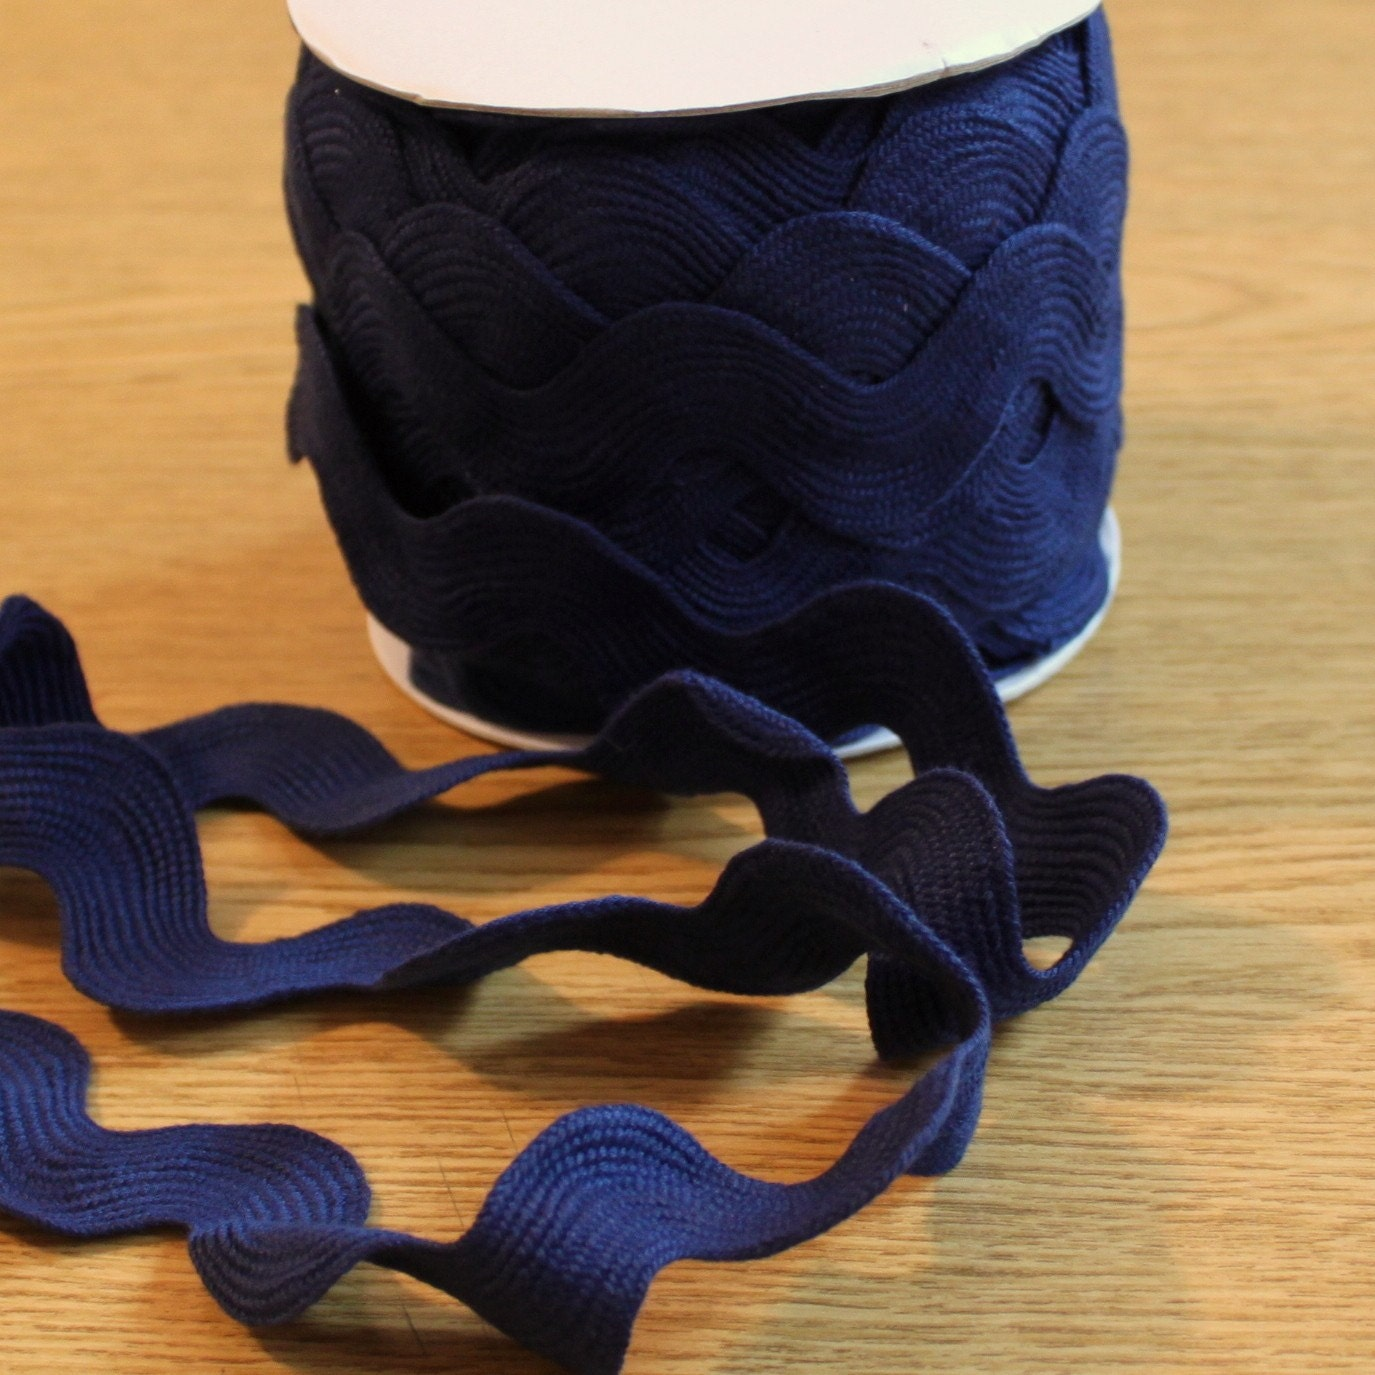 Jumbo Ric Rac in Navy Blue, 1 Yard